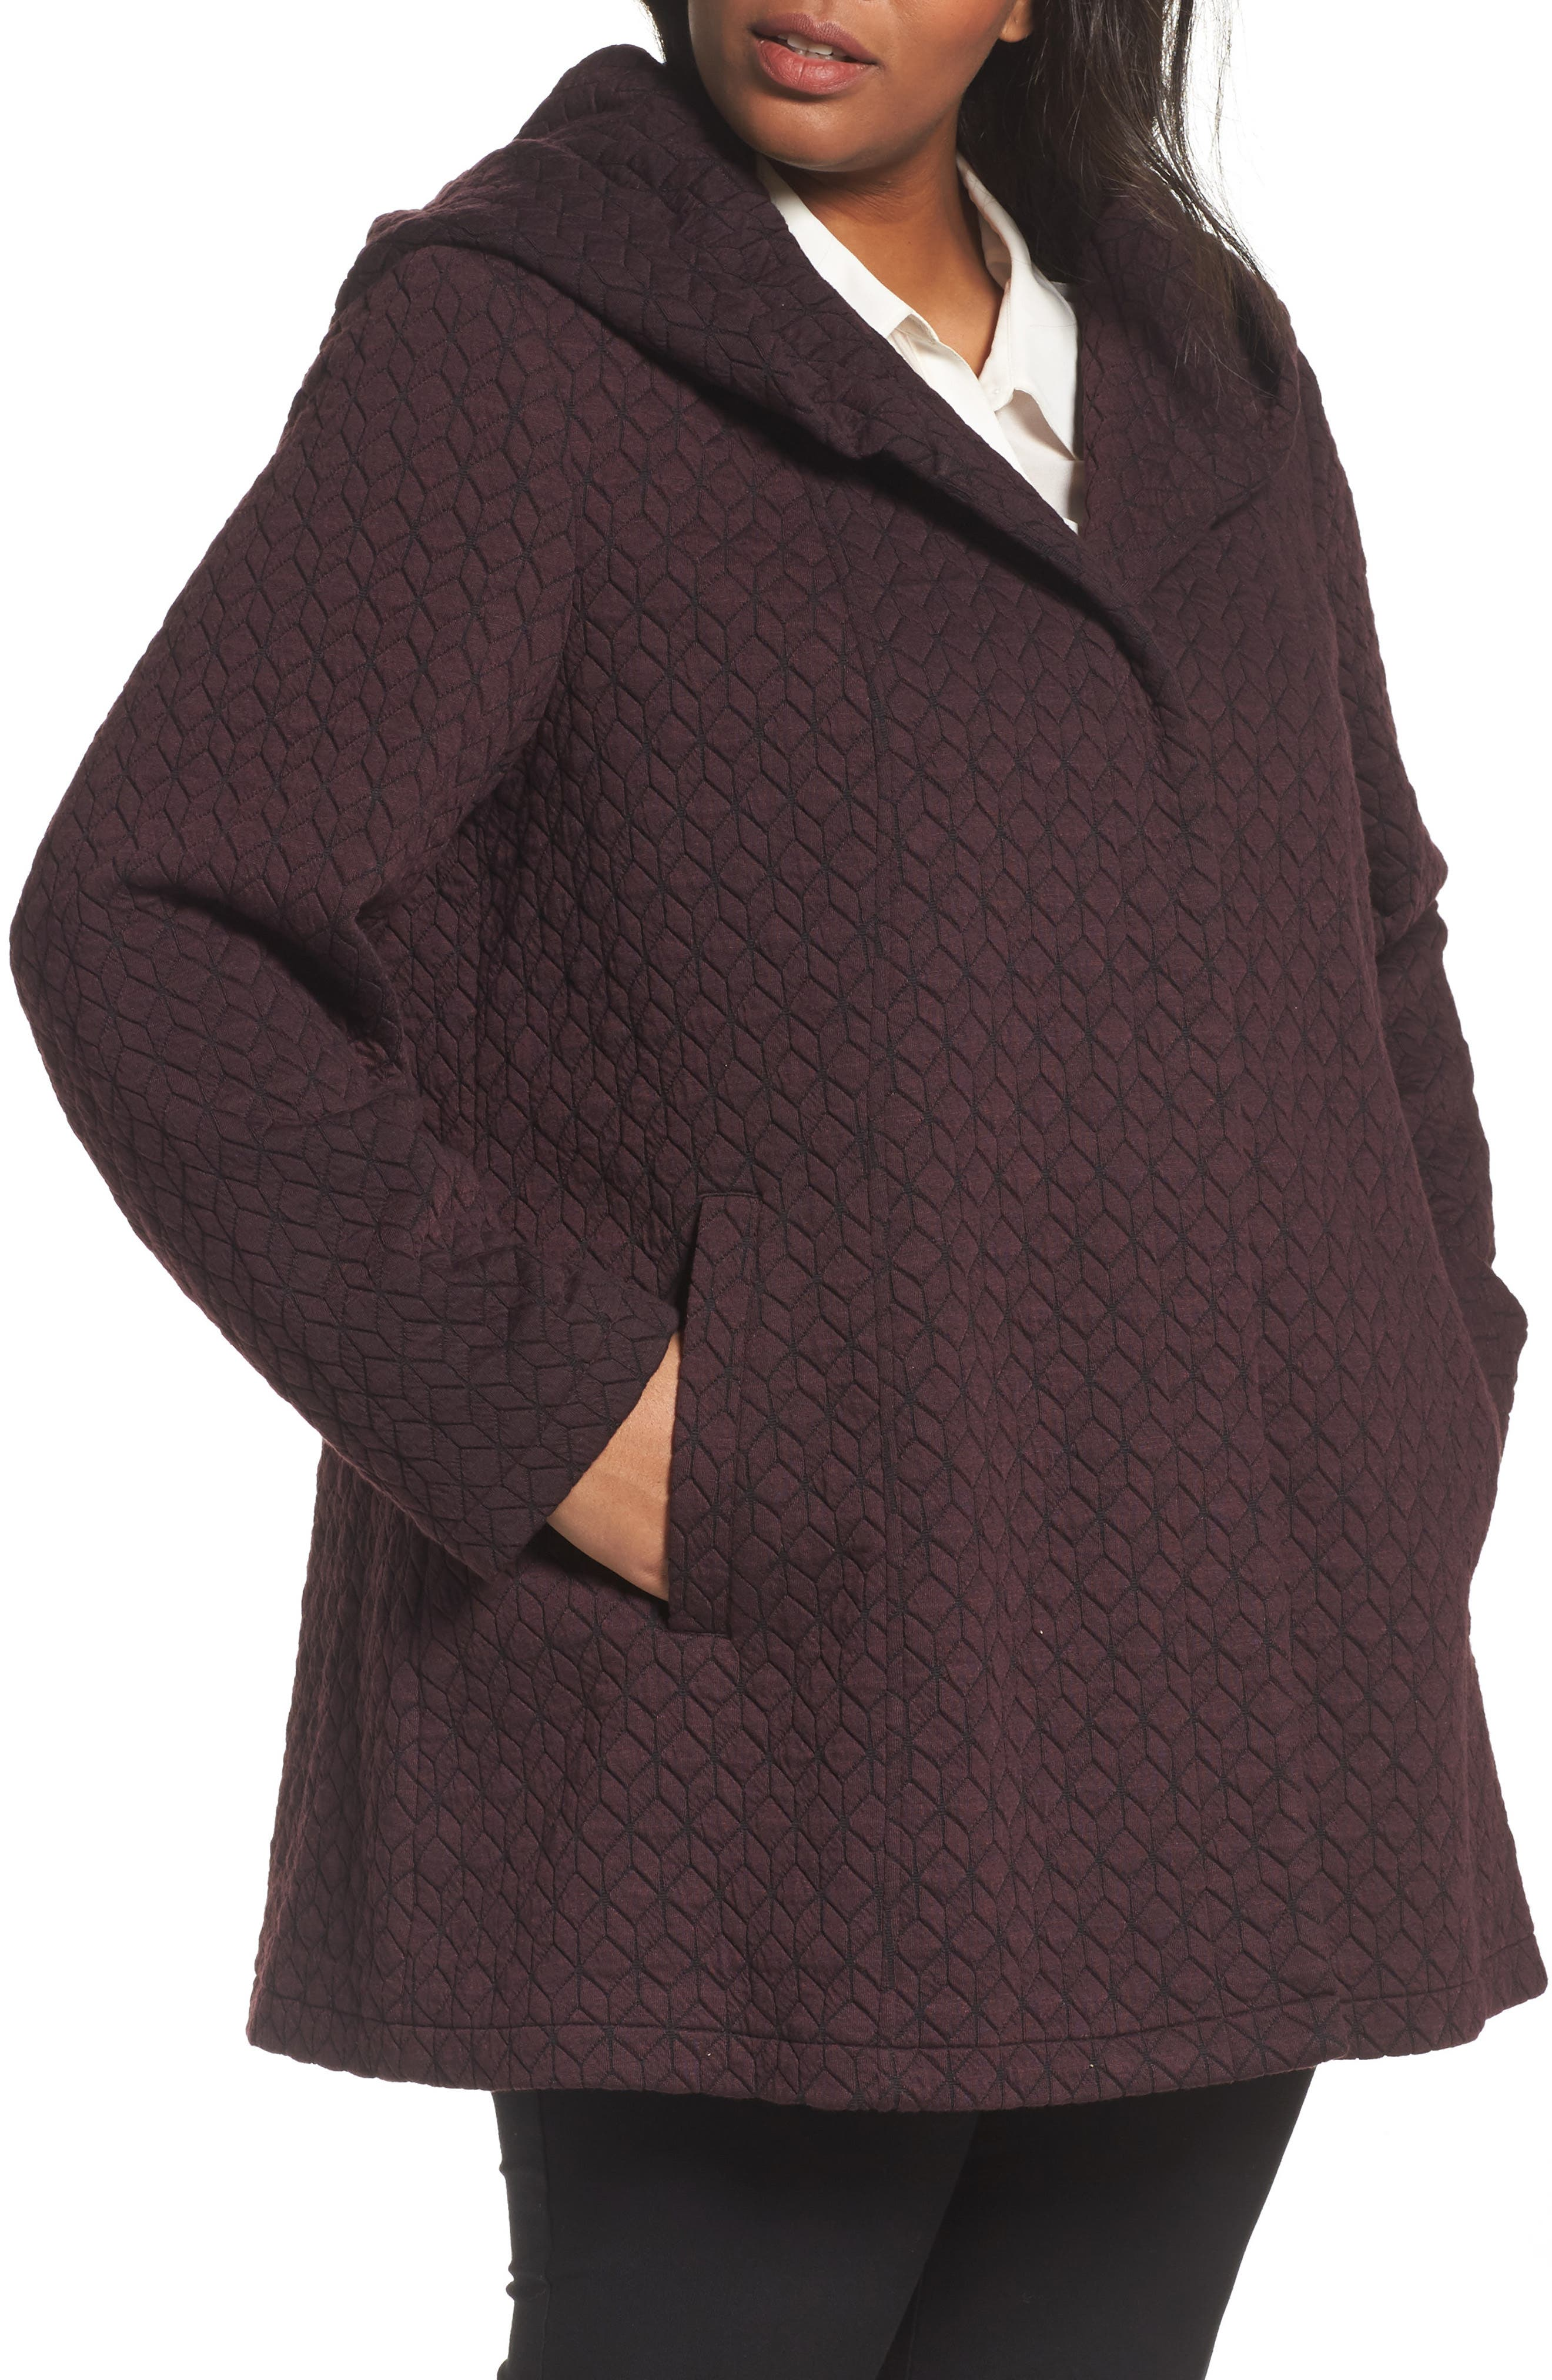 Main Image - Gallery Cozy Knit Coat (Plus Size)